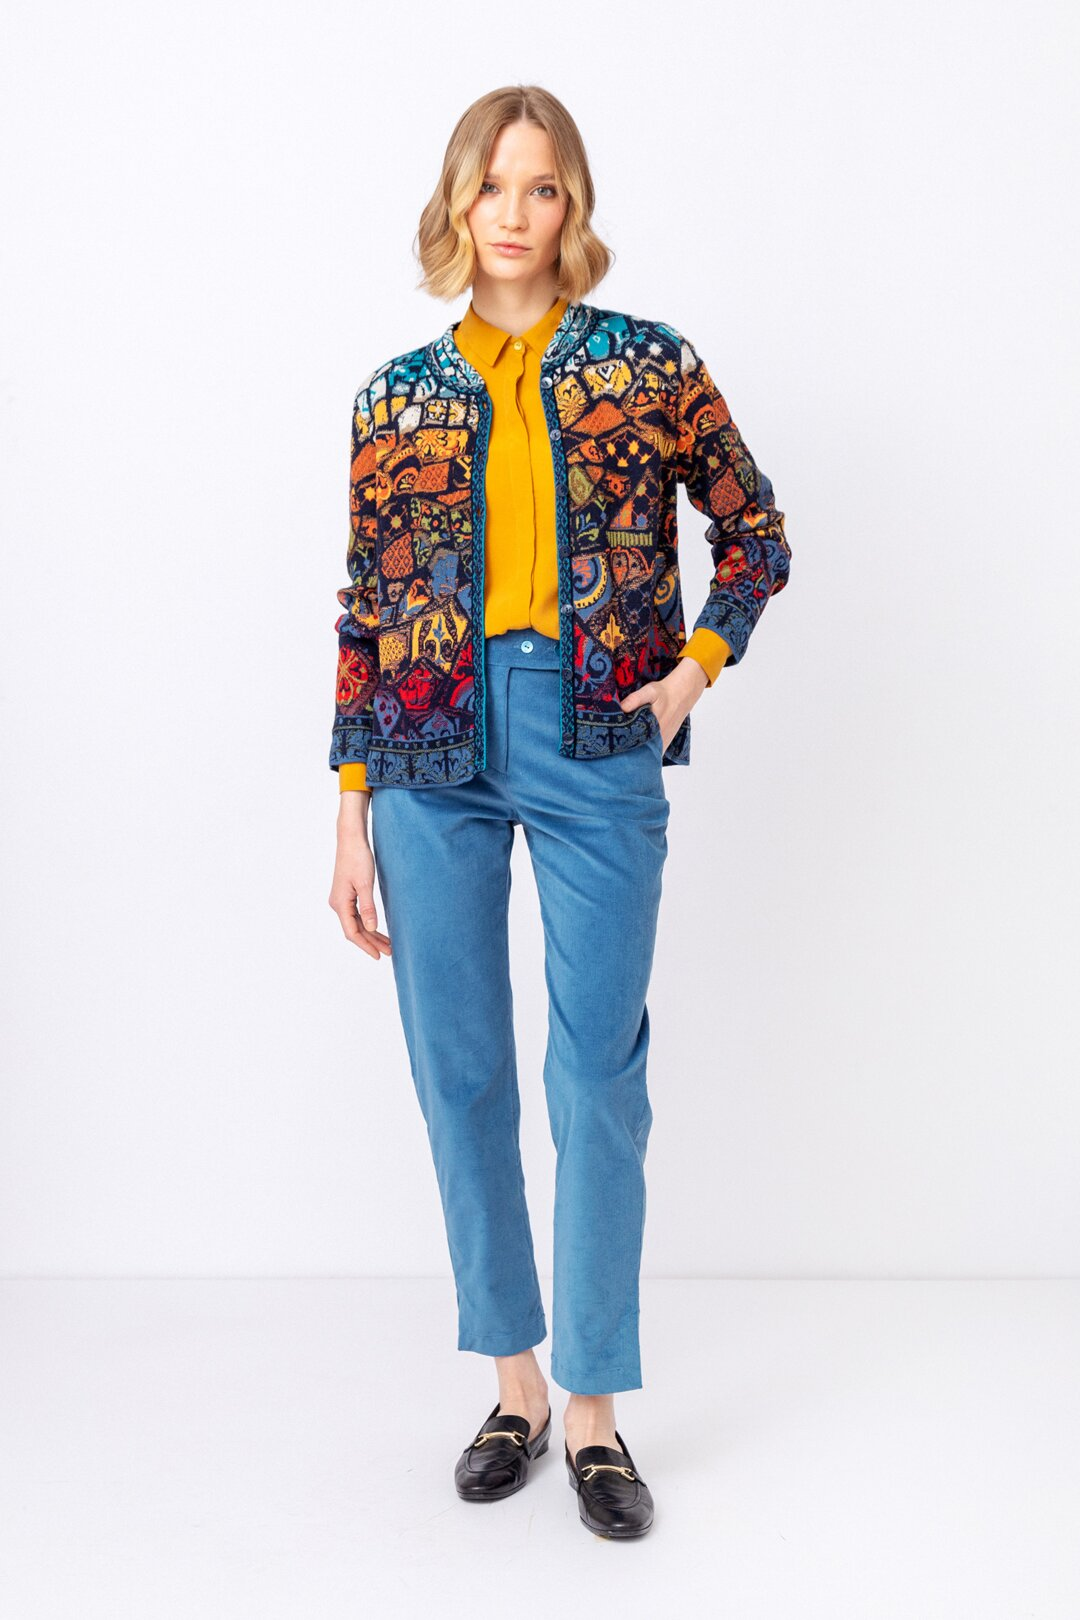 outfit-7c8a0671